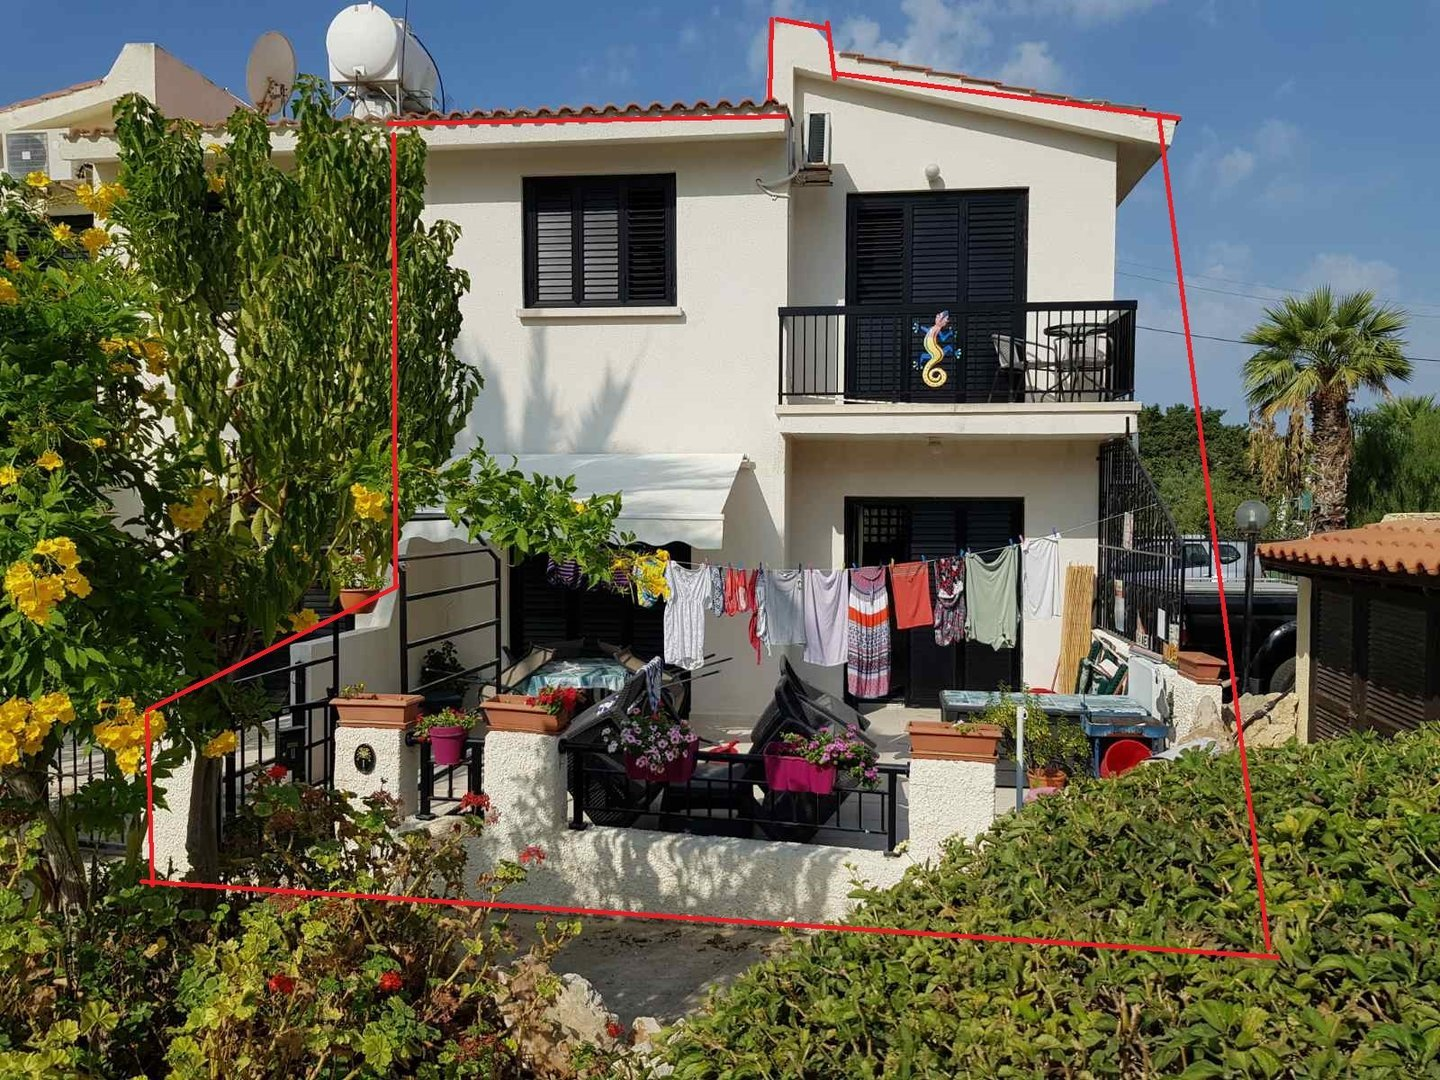 3 bedroom Townhouse For Sale in Kato Paphos, Paphos: 20159 ...